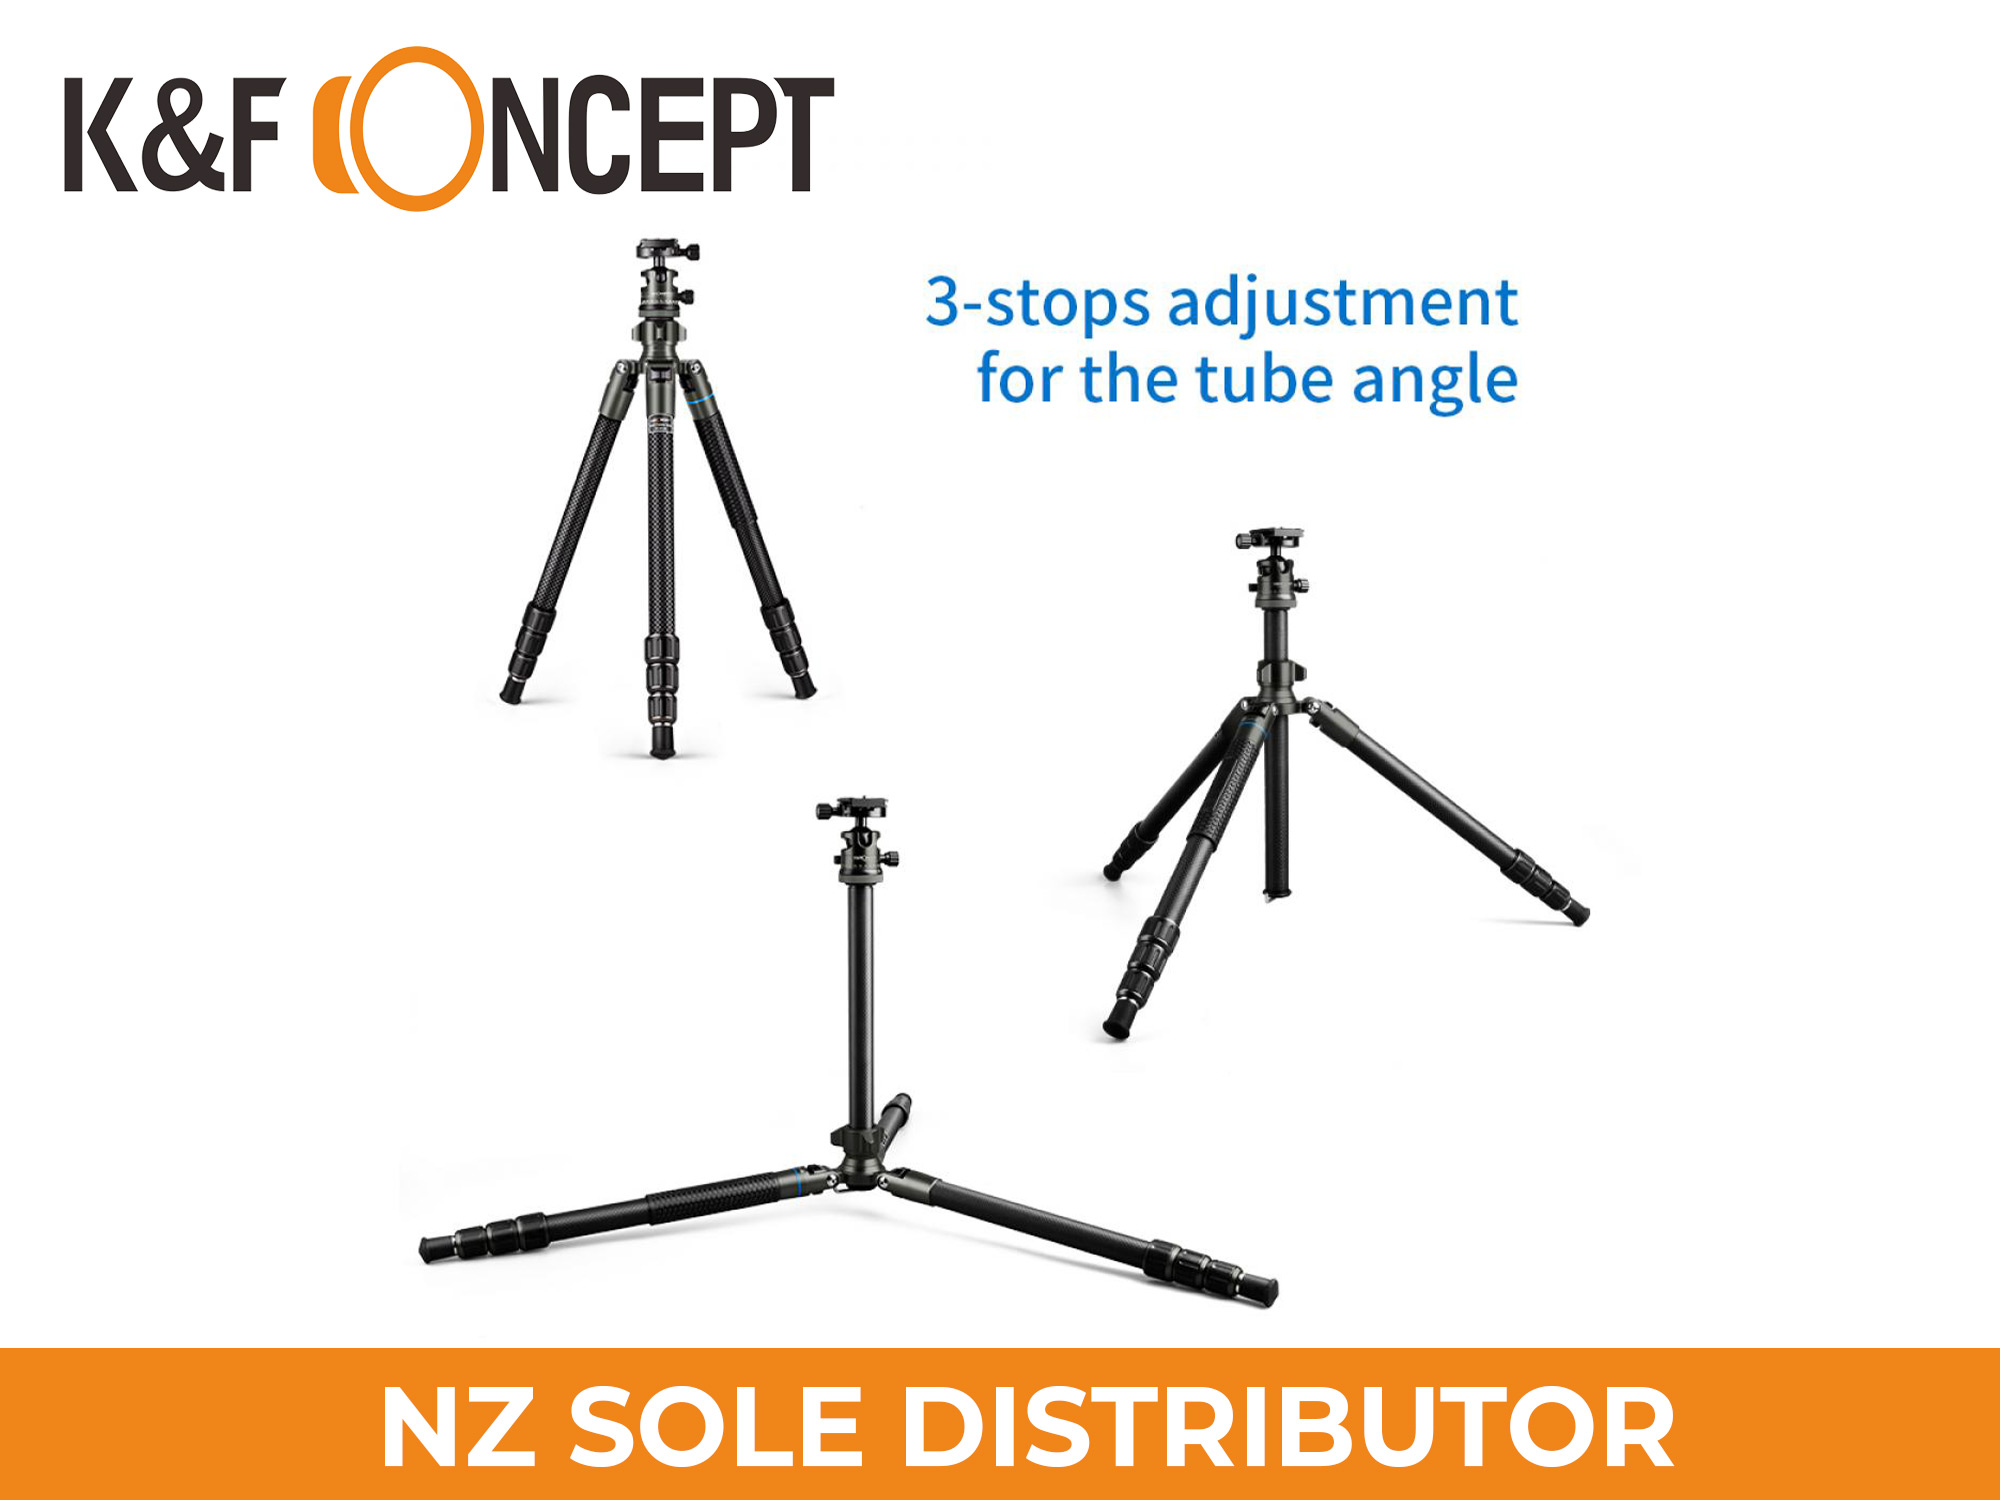 K&F Concept TC2634 (Black) Carbon Fibre Tripod Lightweight Portable for Travel Photography